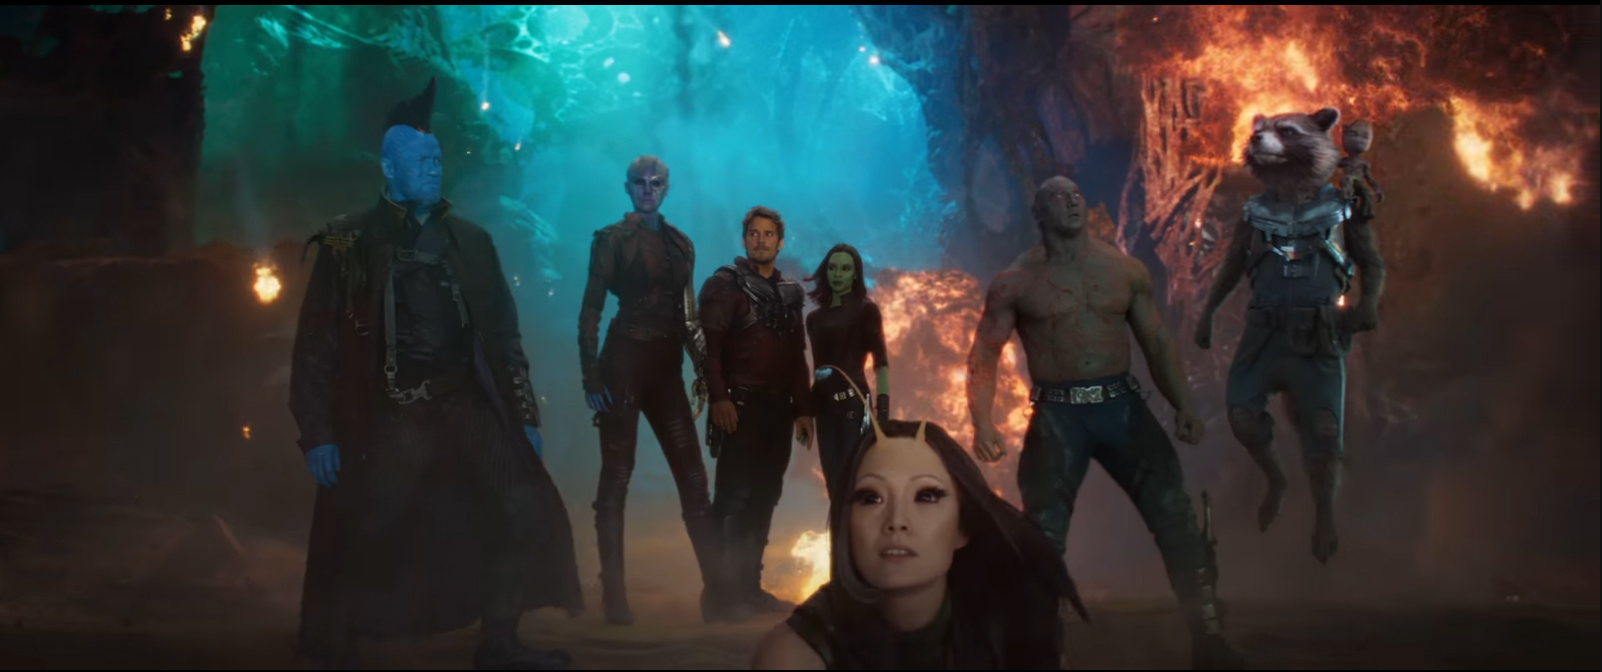 Guardians of the Galaxy Vol 2 - Full Team